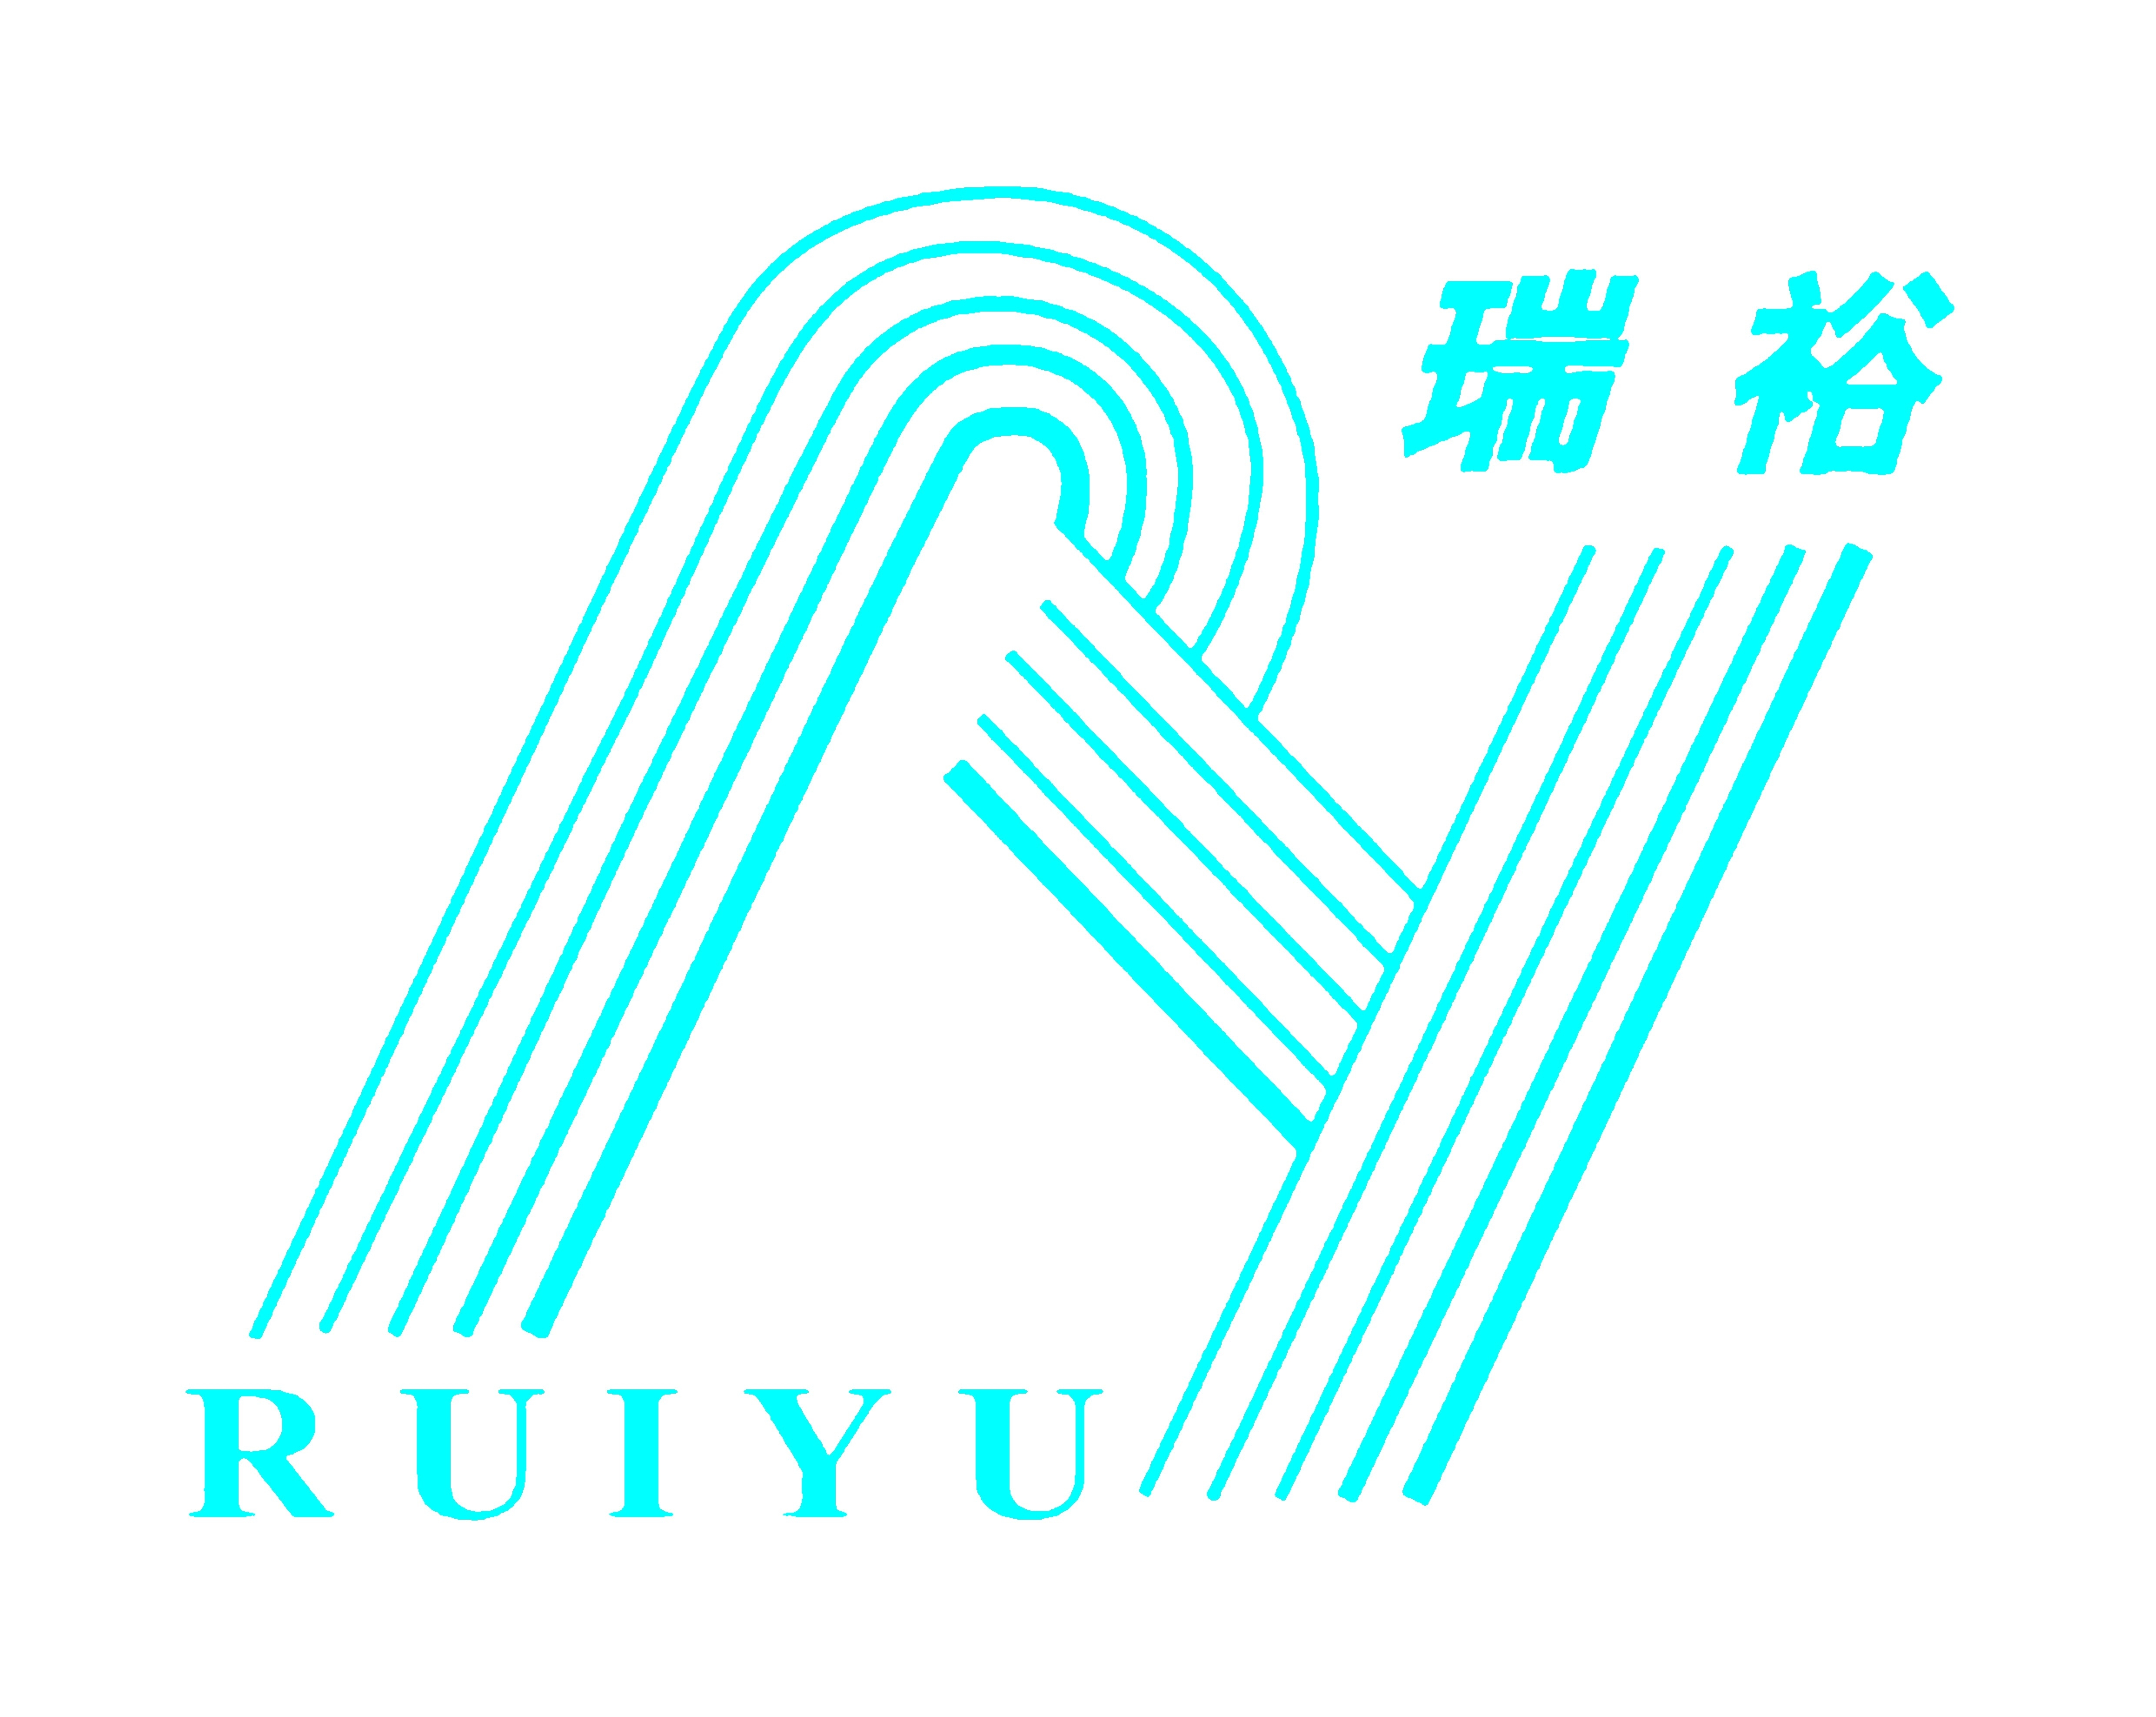 HANGZHOU RUIYU INDUSTRIAL CO LTD